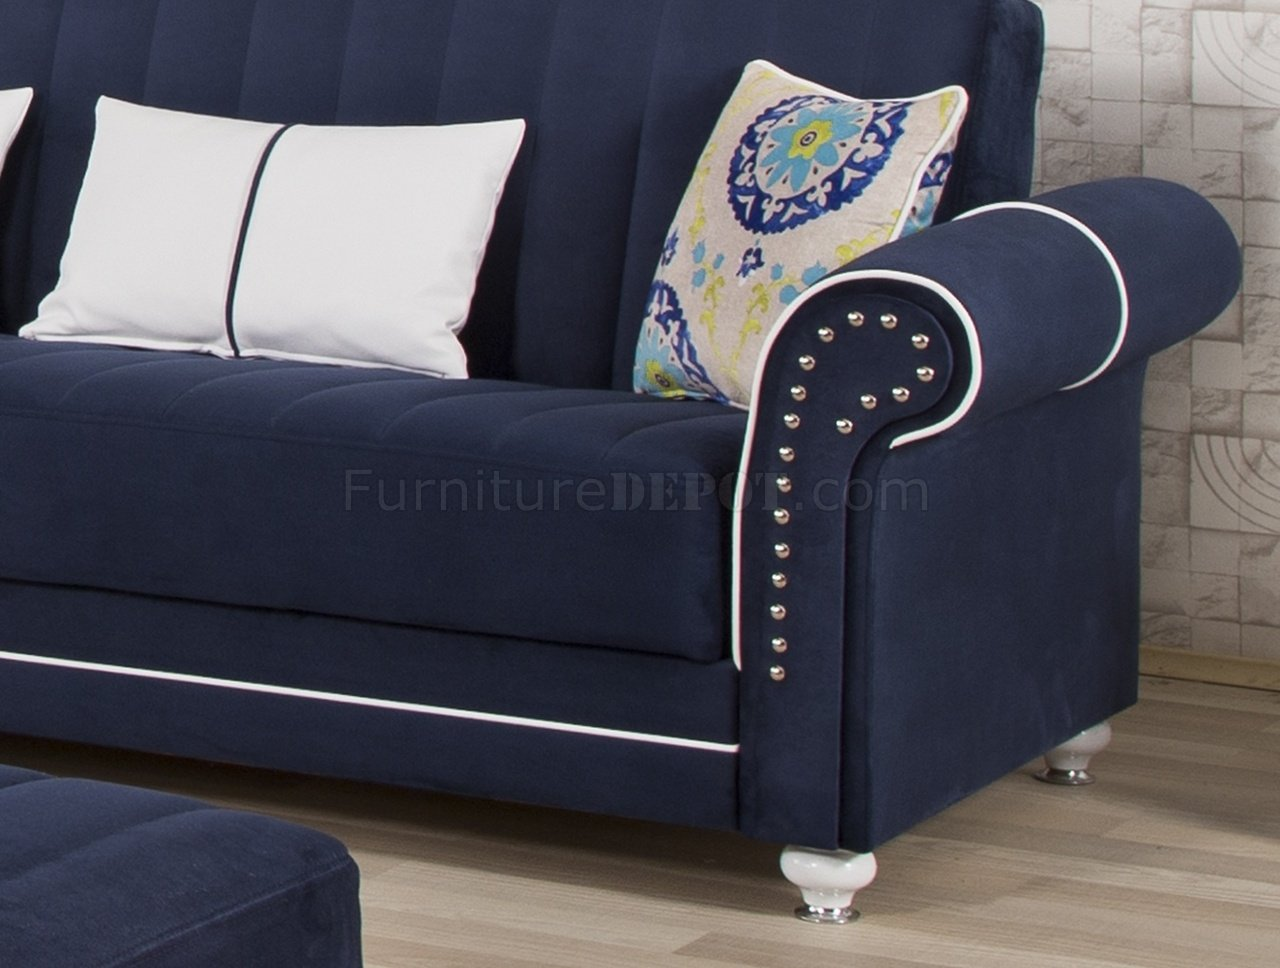 royal home sectional sofa in dark blue